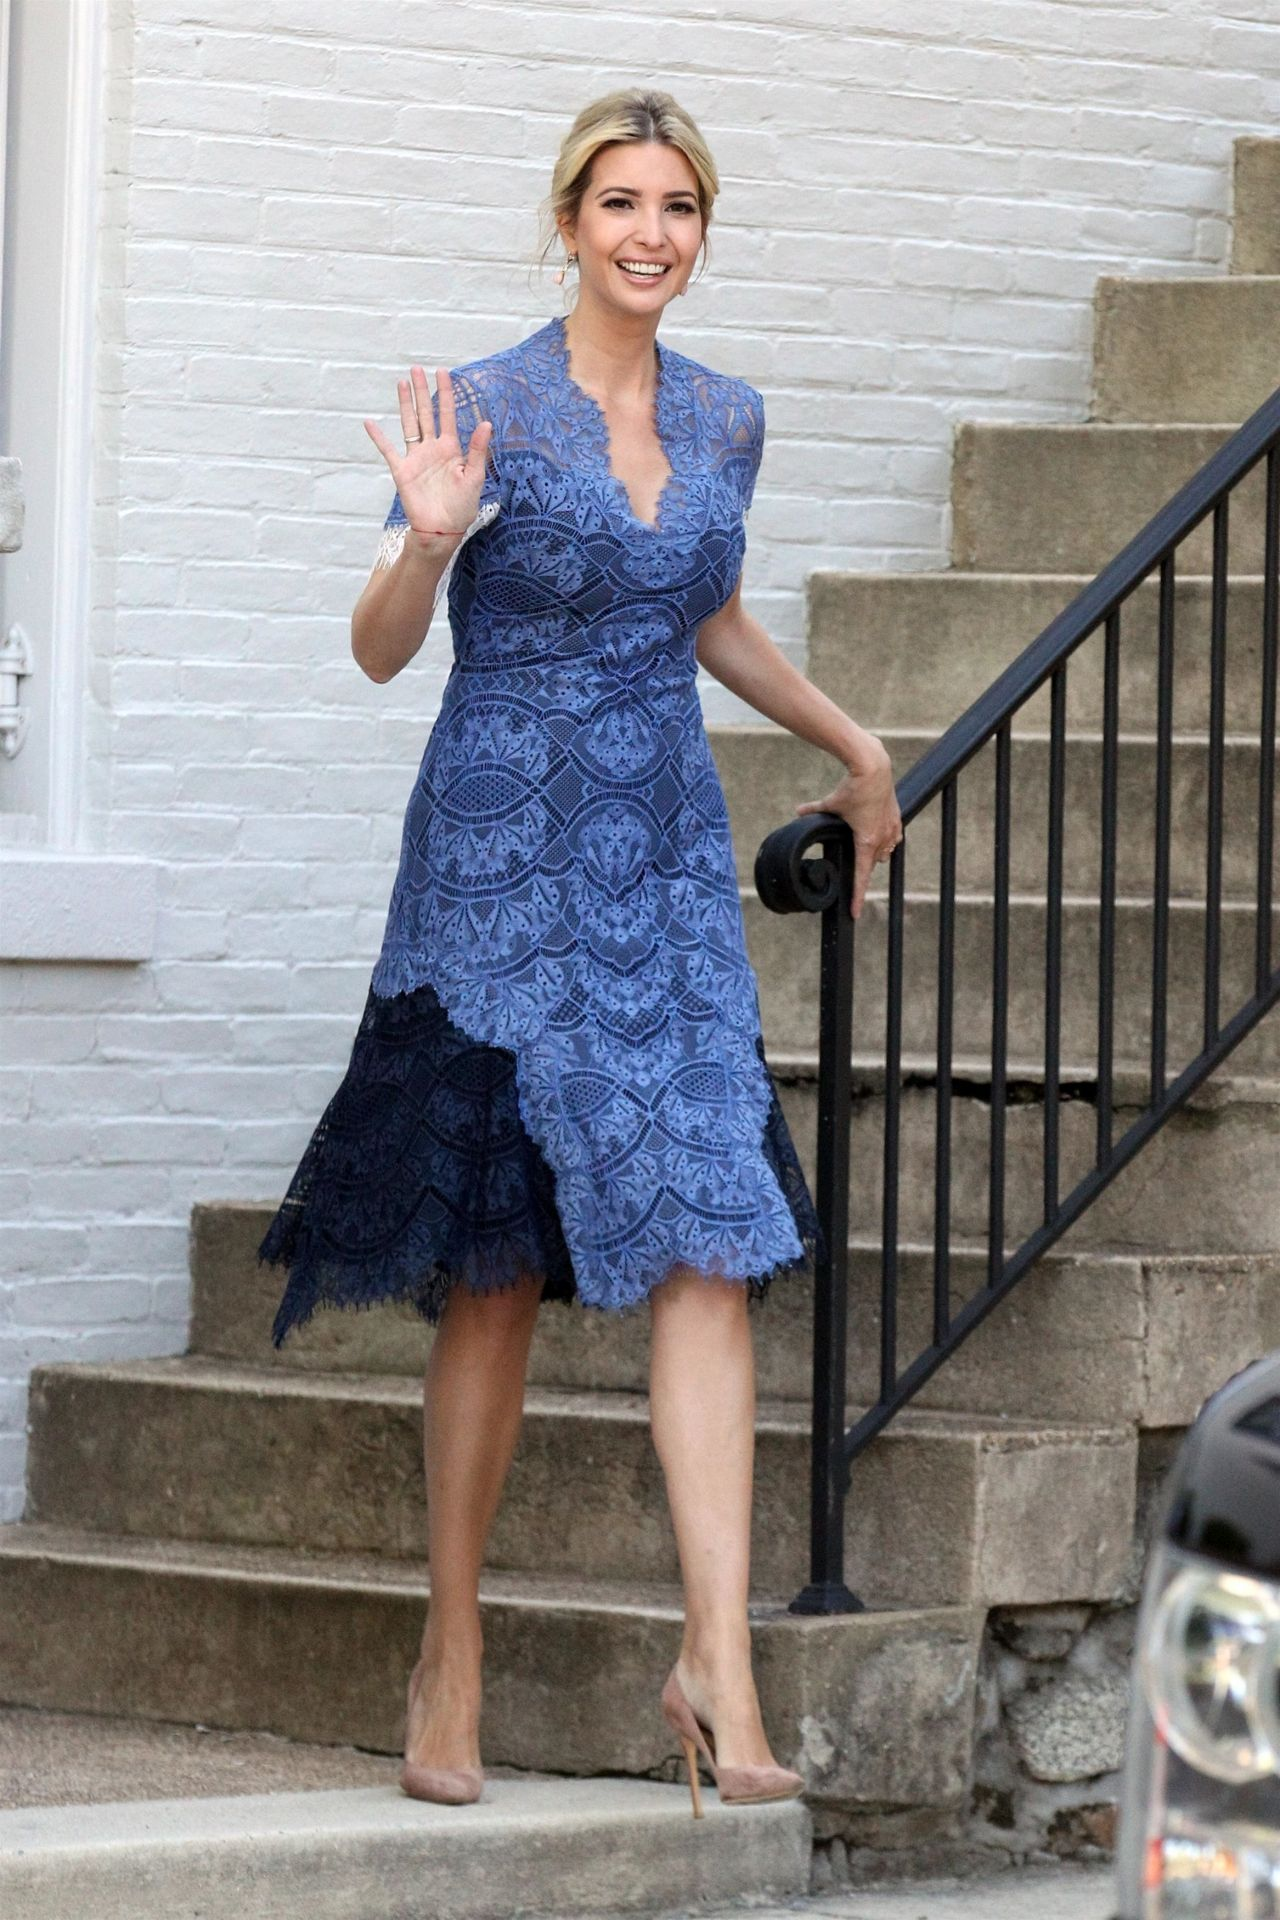 Ivanka Trump in a Blue Summer Dress - Washington, D.C. 07 ...